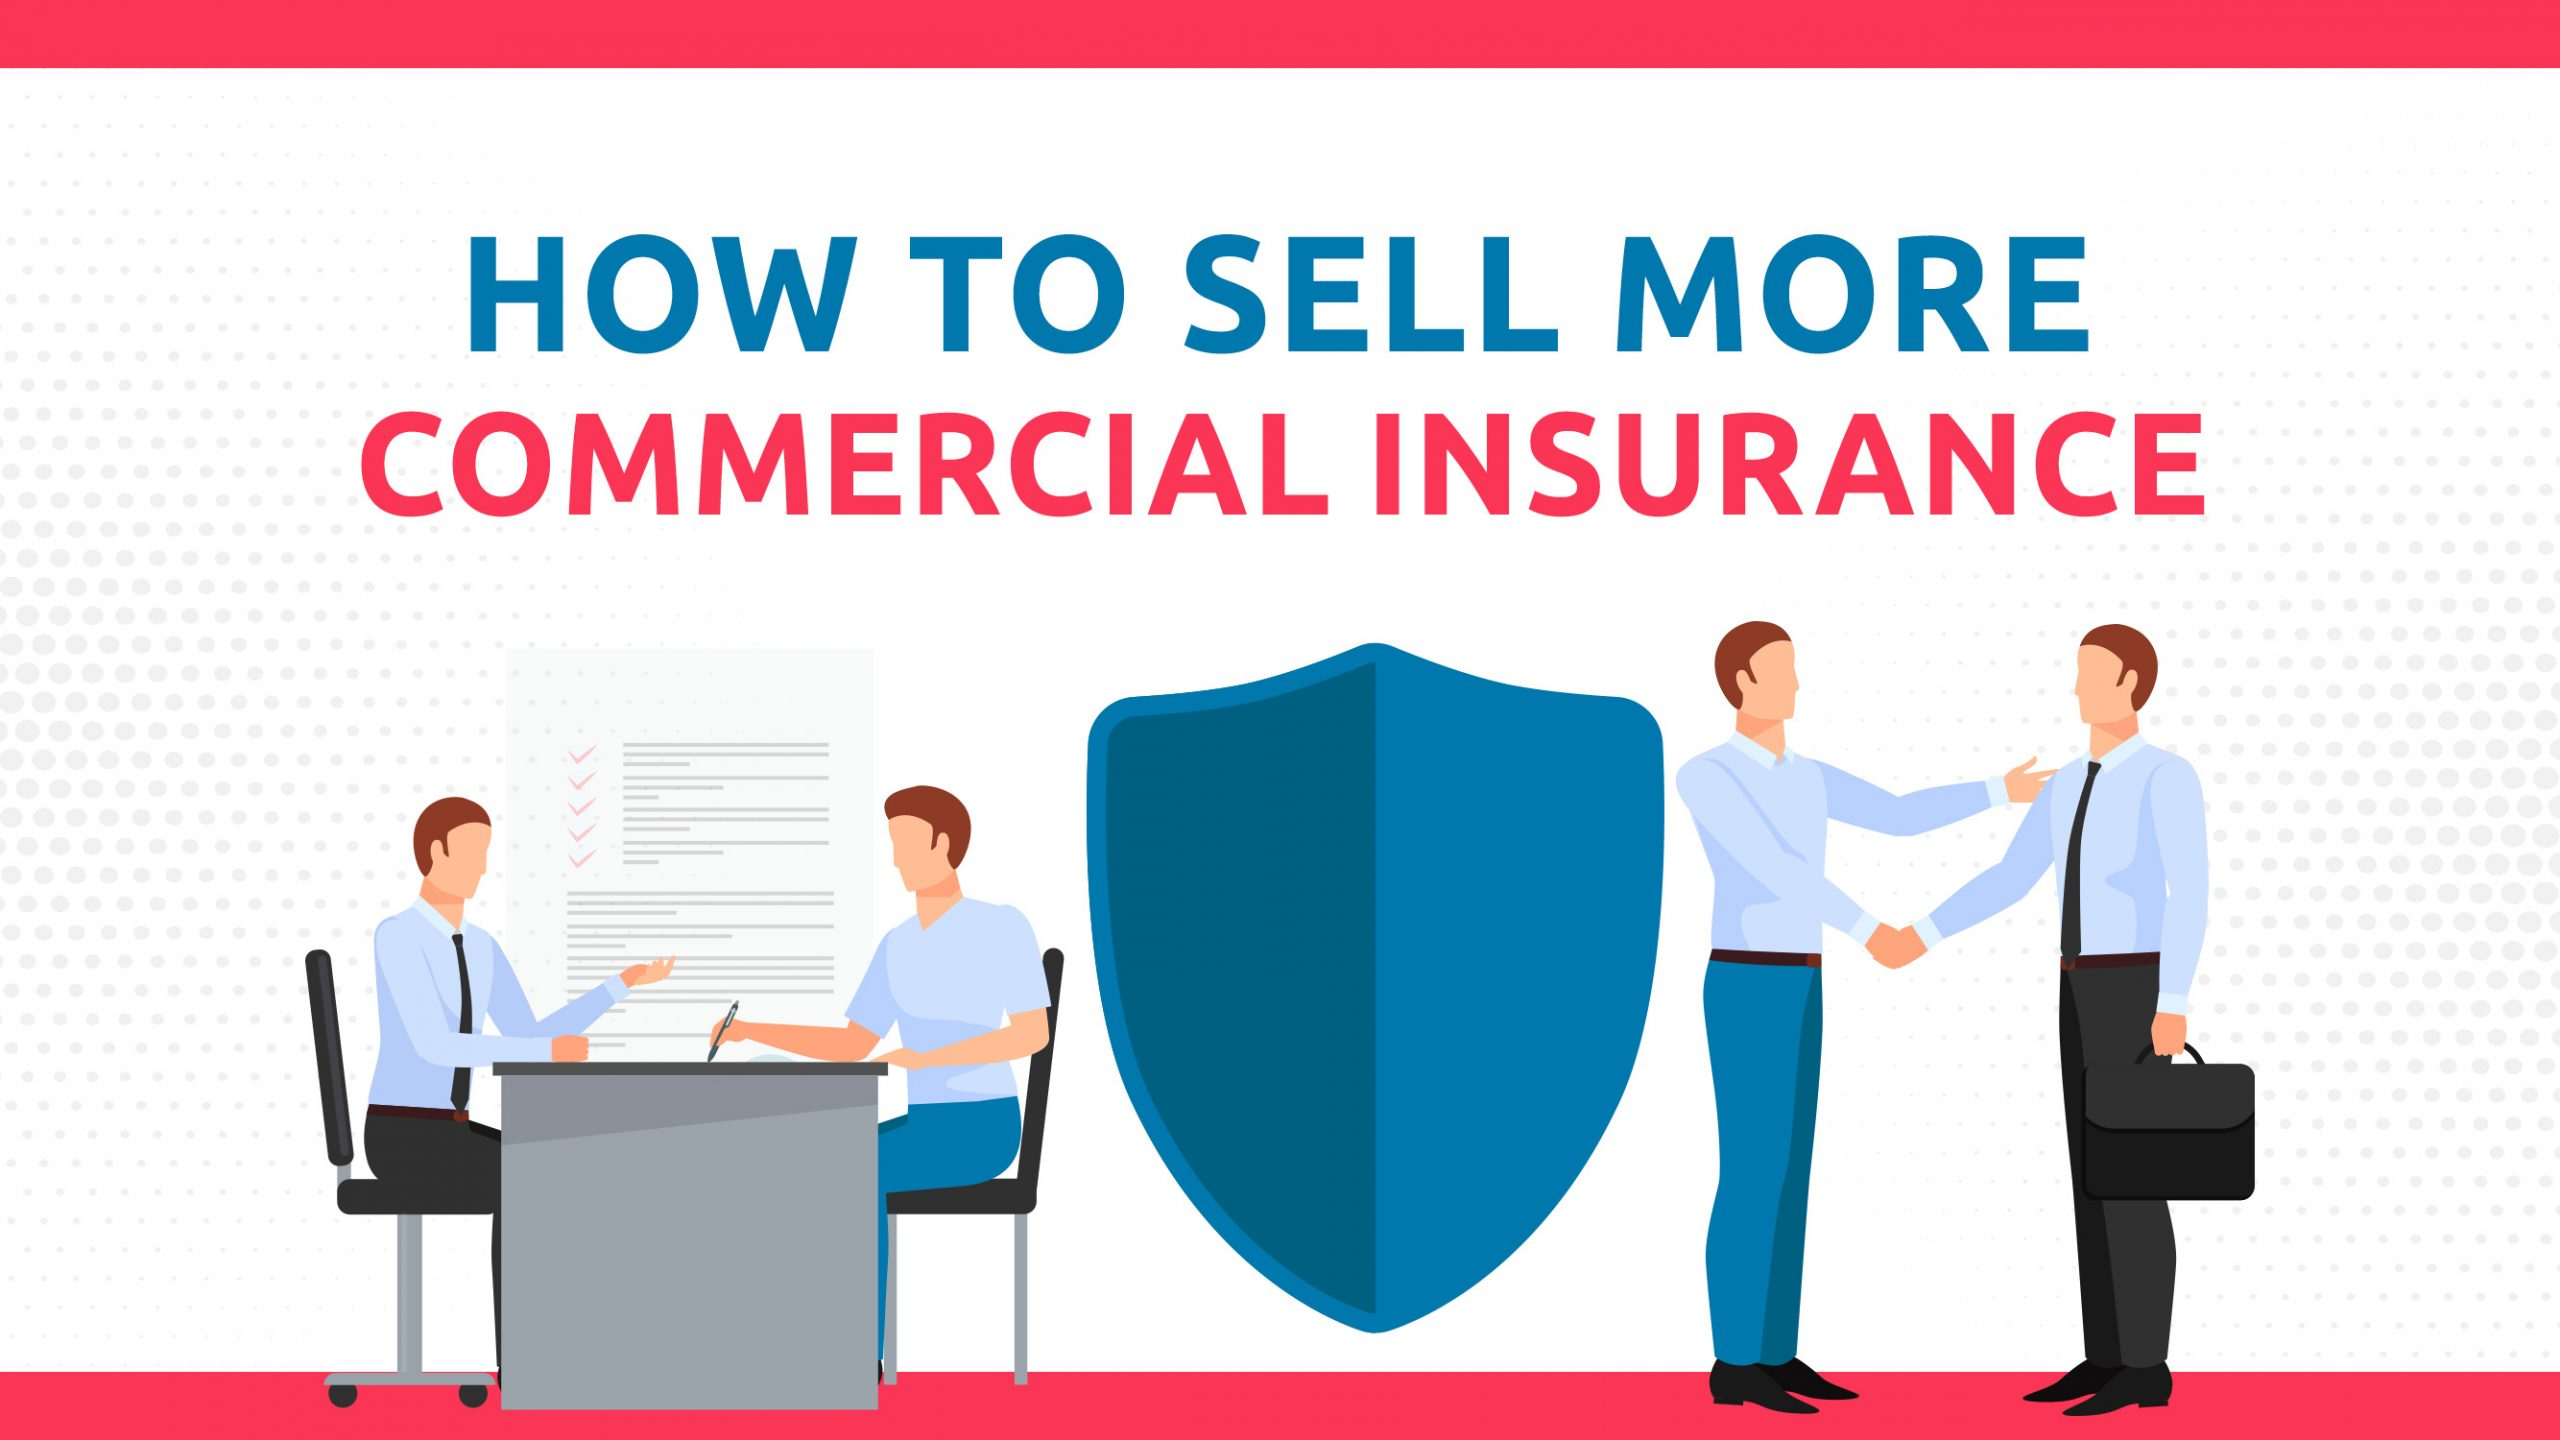 How To Sell More Commercial Insurance